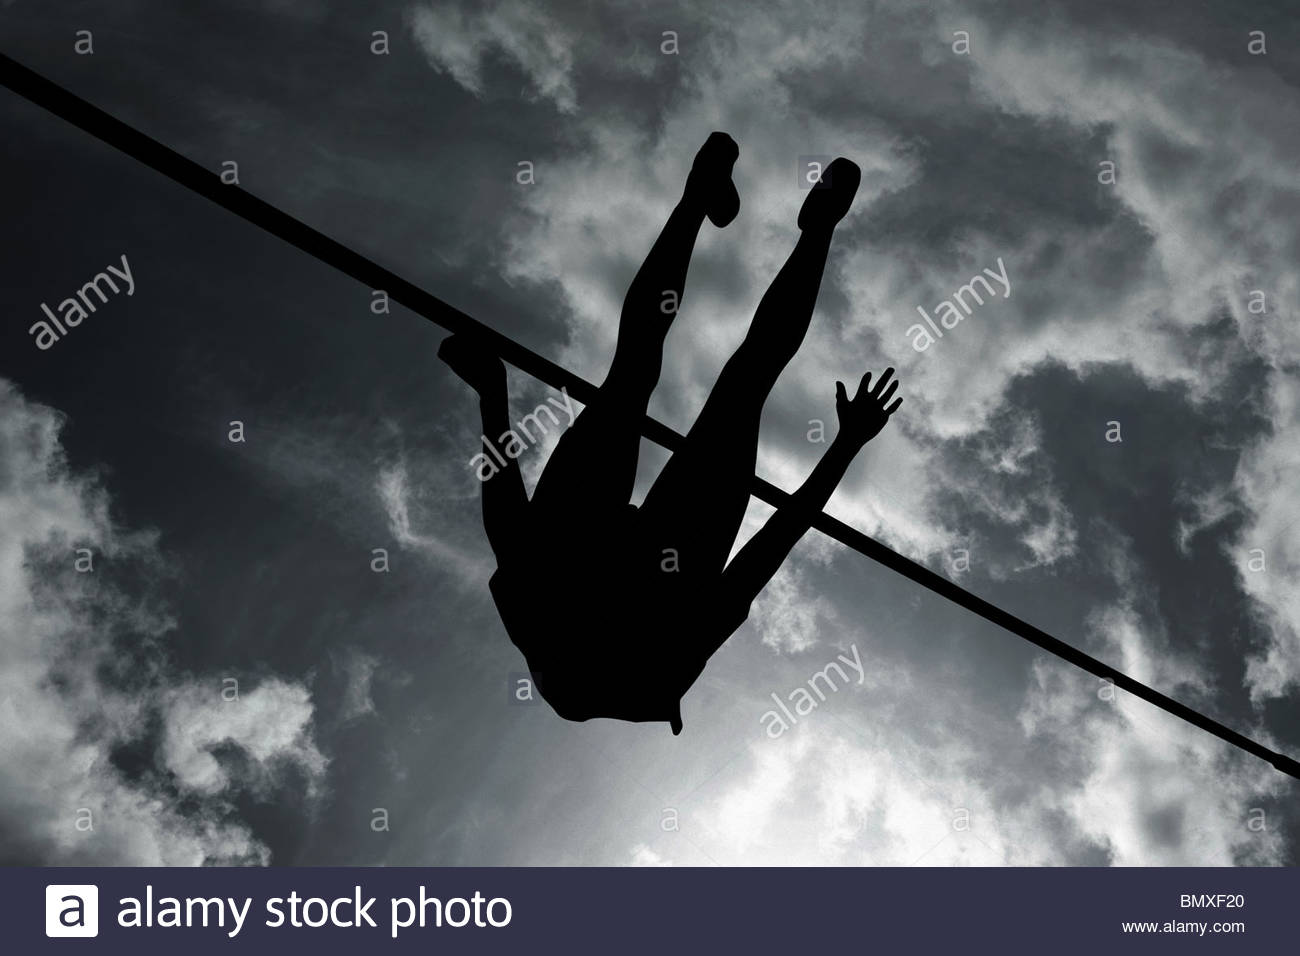 Silhouette of high jumper - Stock Image